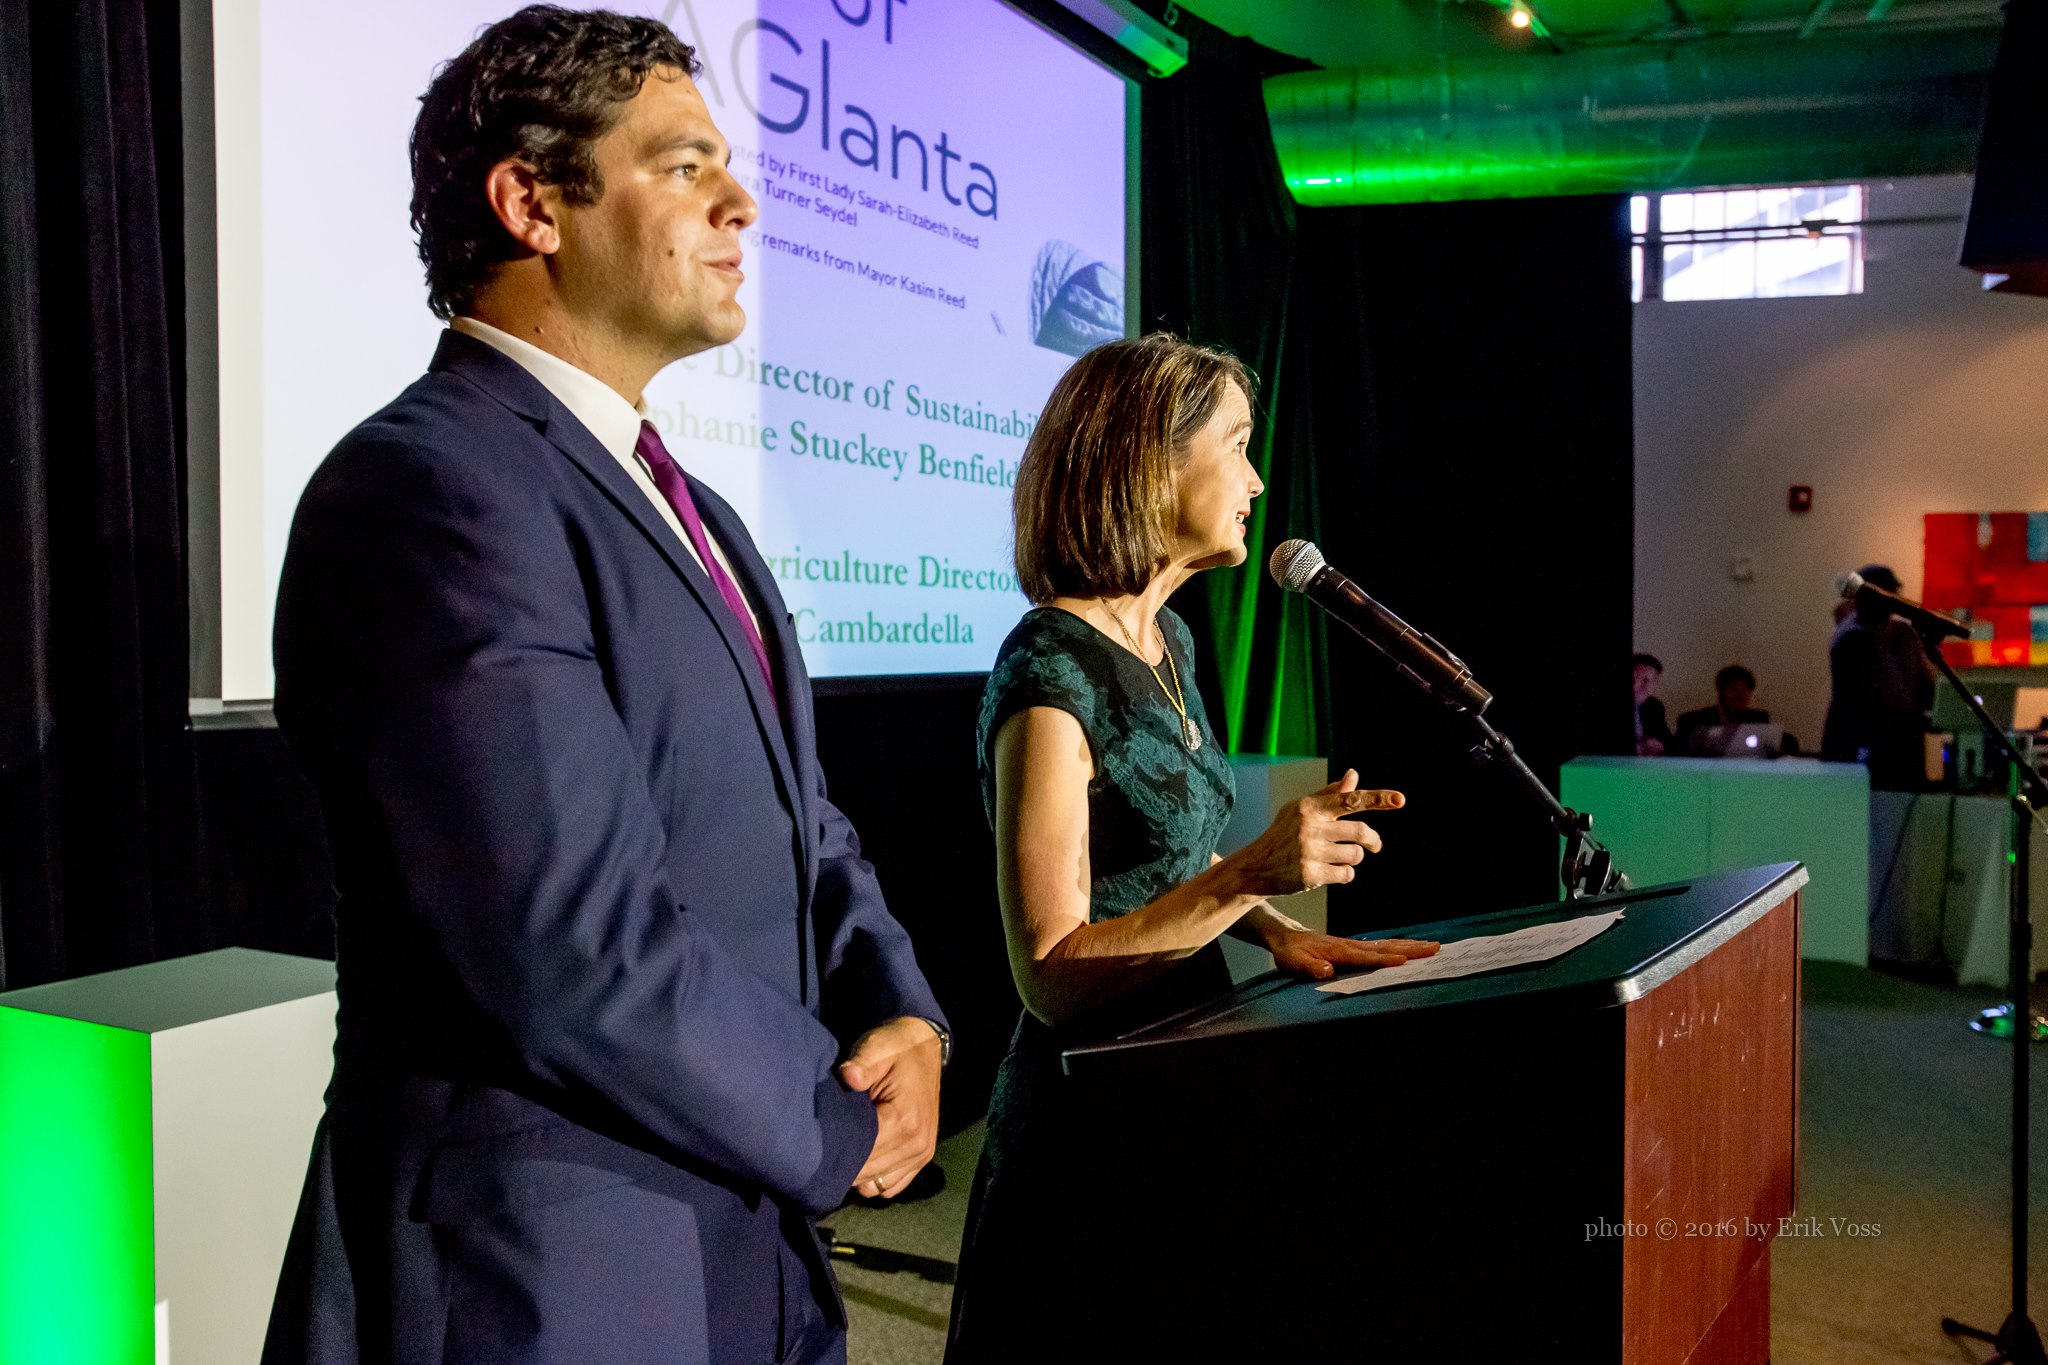 Atlanta's Urban Agriculture Director, Mario Cambardella, will participate in the 2018 Aglanta Conference